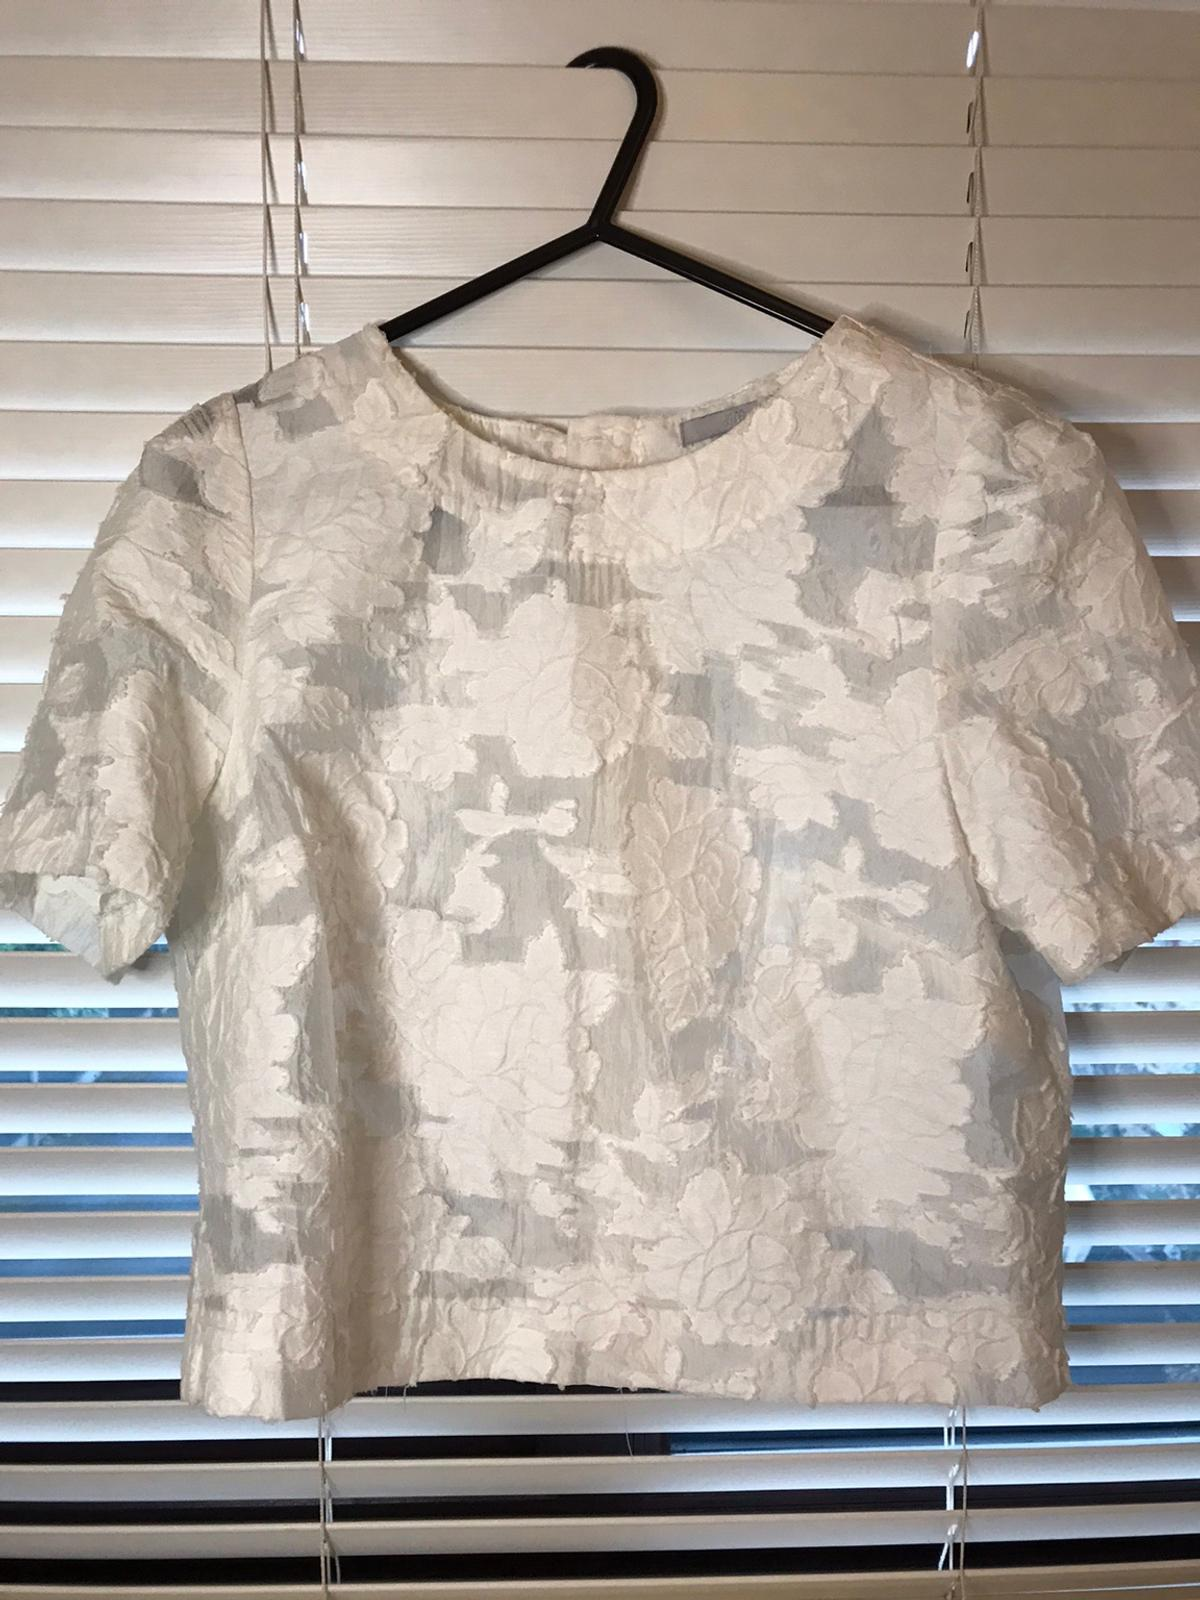 - women's h&m white mesh floral top size 10 (would fit size 8) - never been worn selling as it doesn't suit me - originally £25 OPEN TO OFFERS